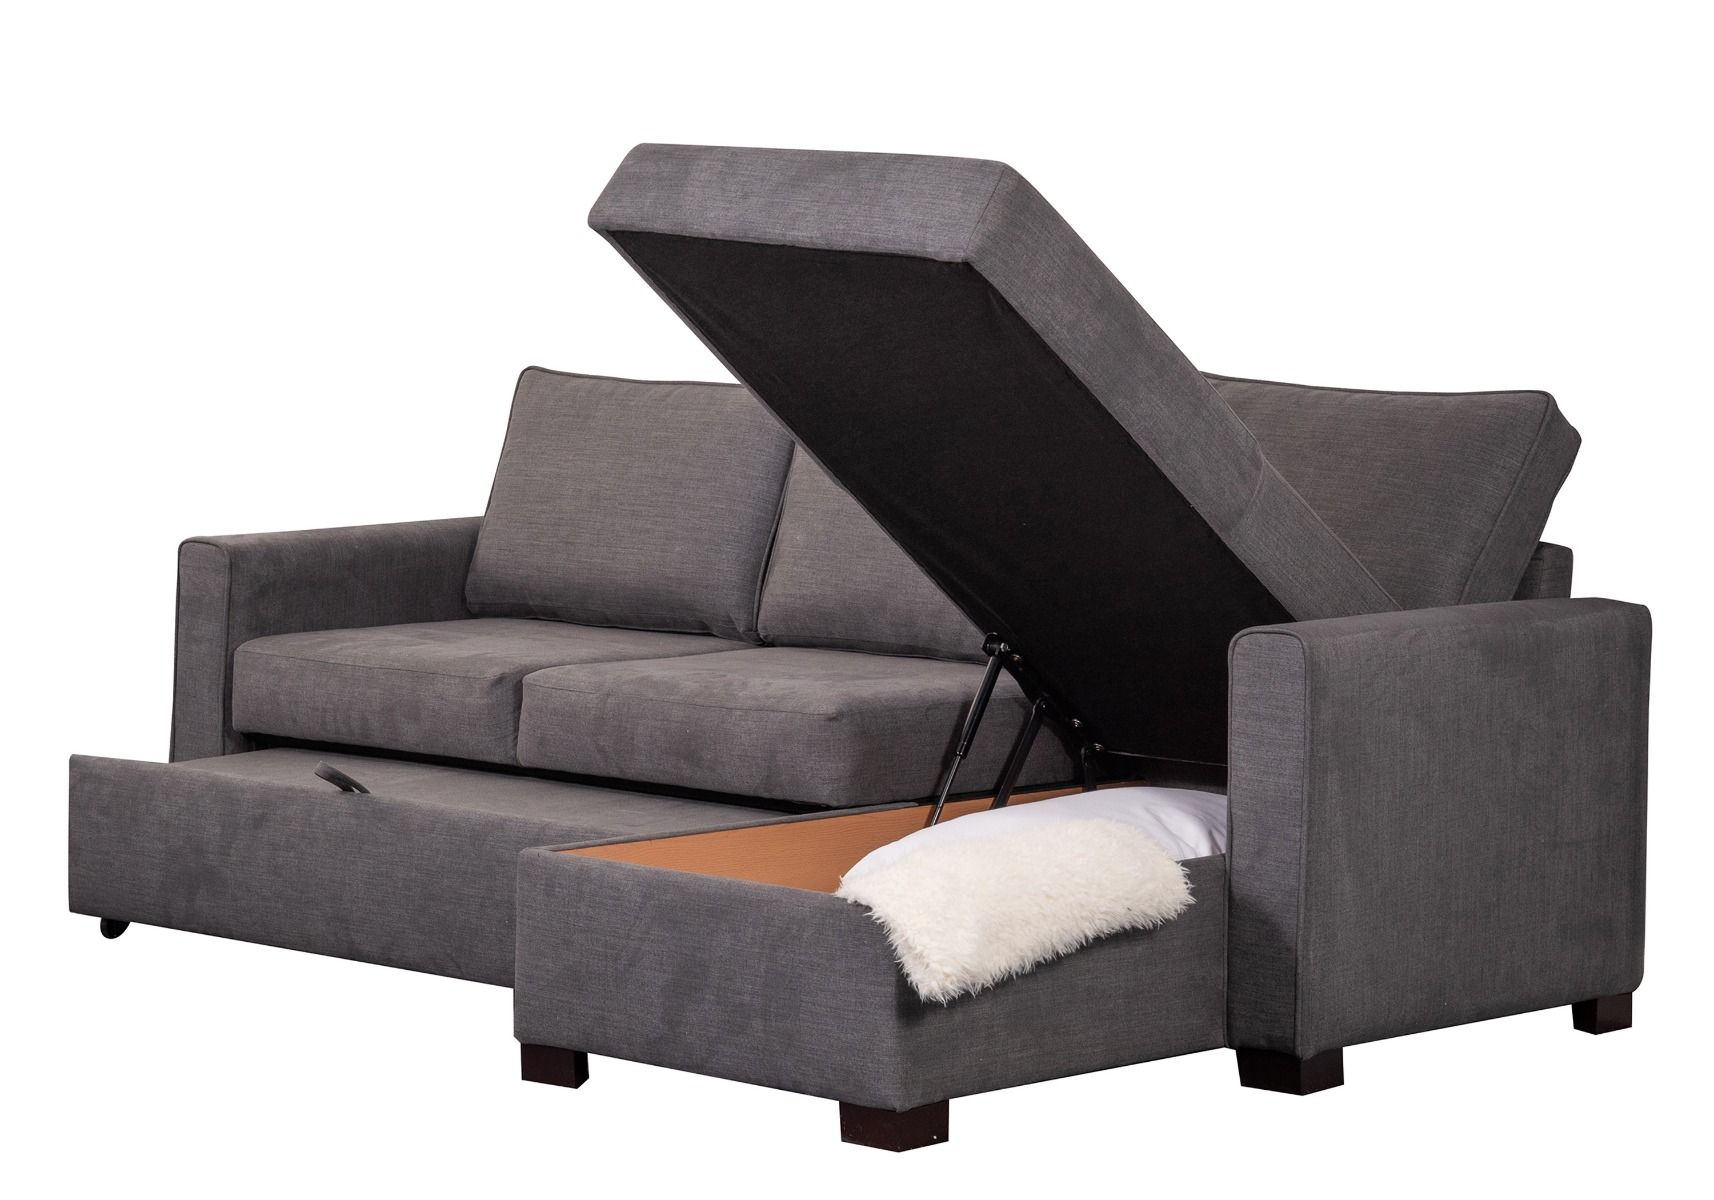 Picture of: Sweet Dreams Medway Corner Sofa Bed